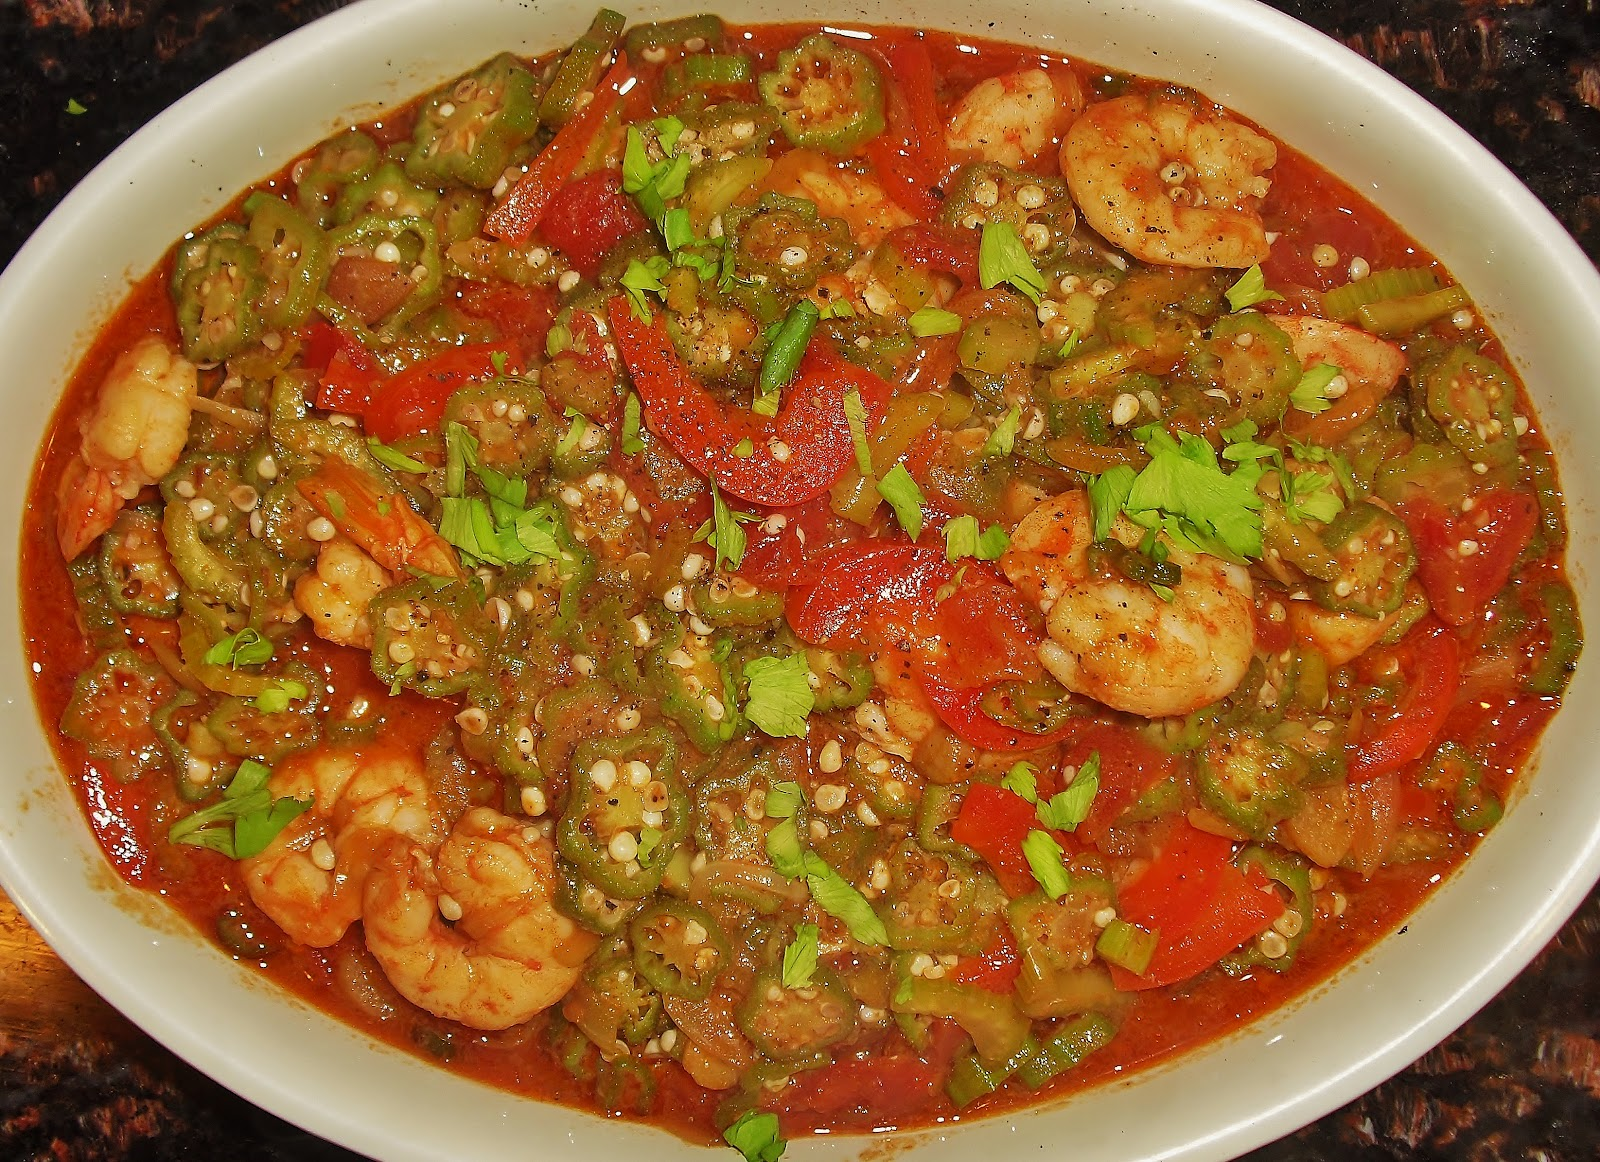 gumbo recipes from new orleans